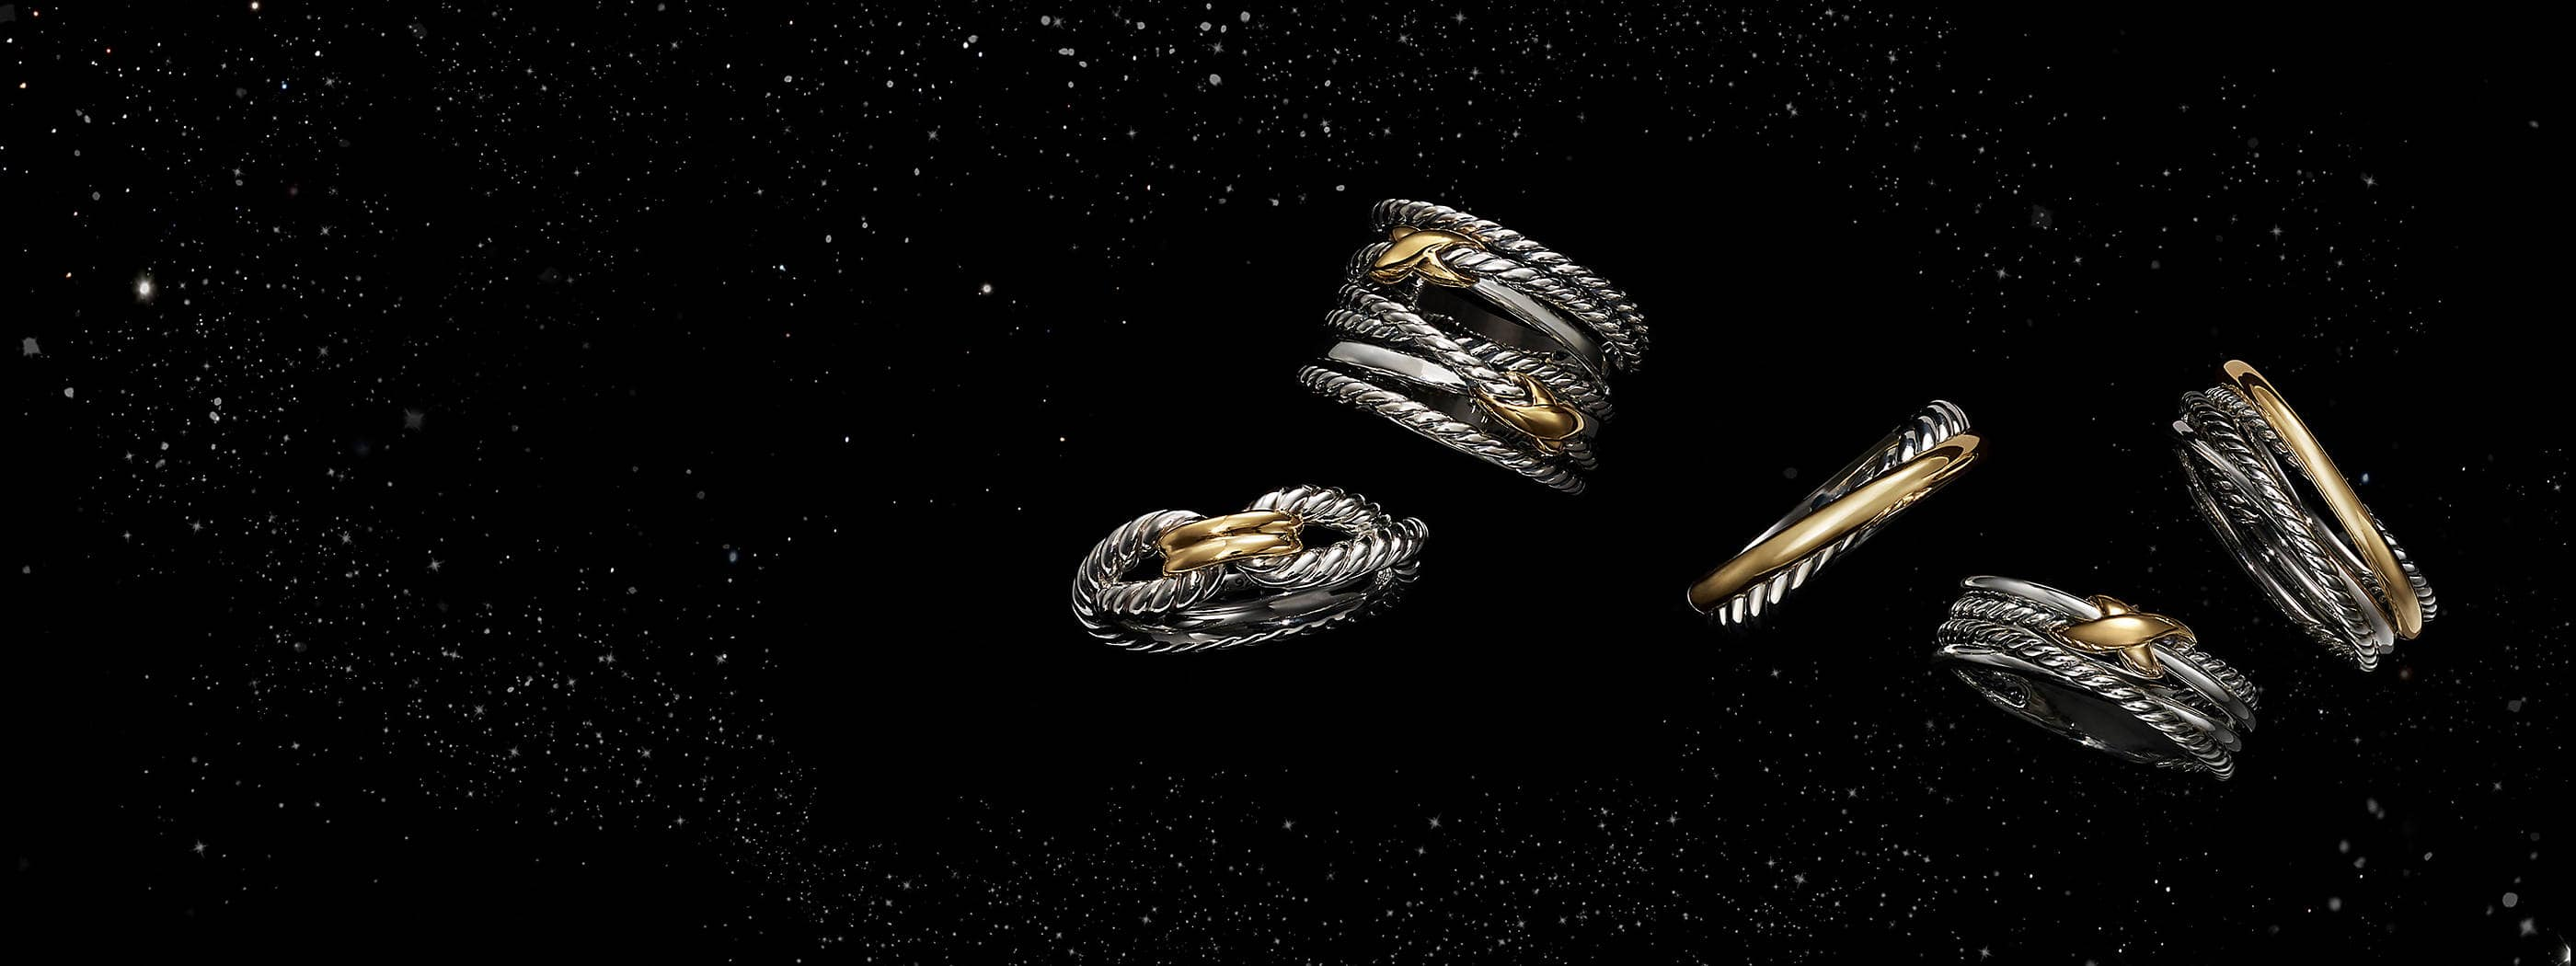 A color photograph shows five David Yurman women's rings from the Crossover and X collections floating in front of a starry night sky. The jewelry is crafted from sterling silver with 18K yellow gold accents.